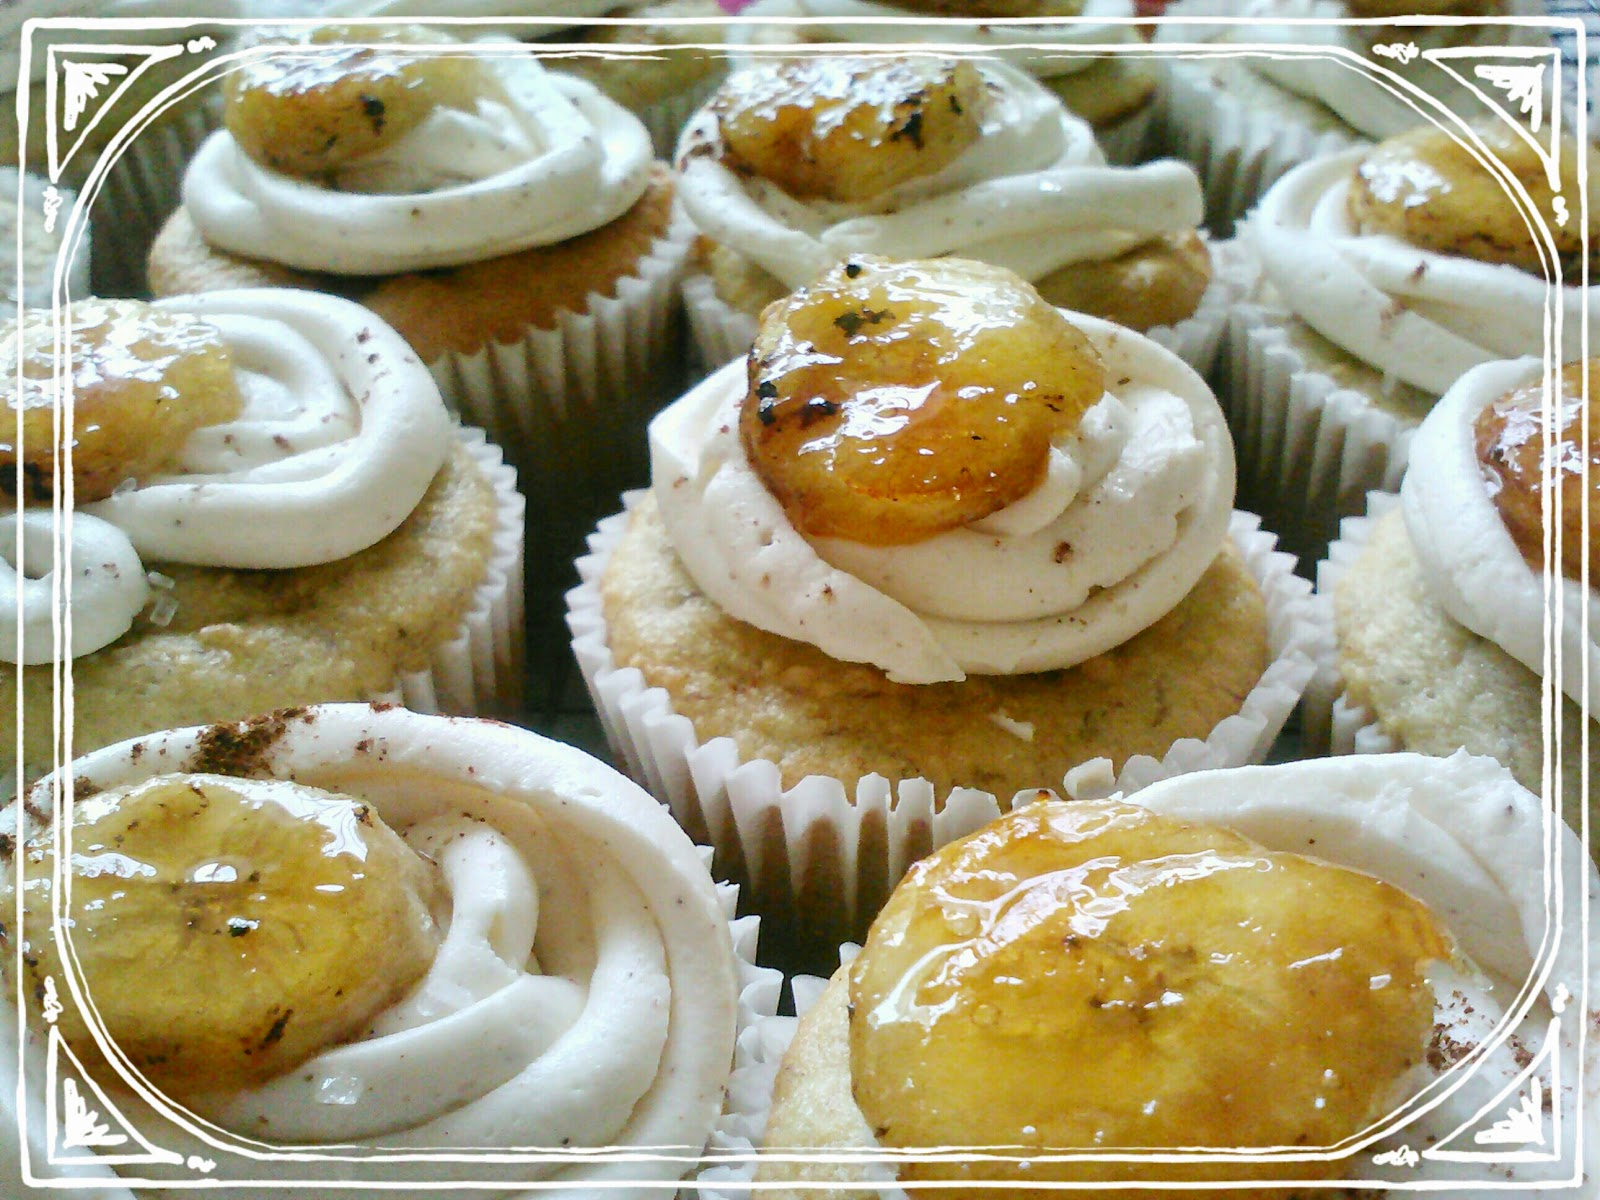 candied banana cupcakes